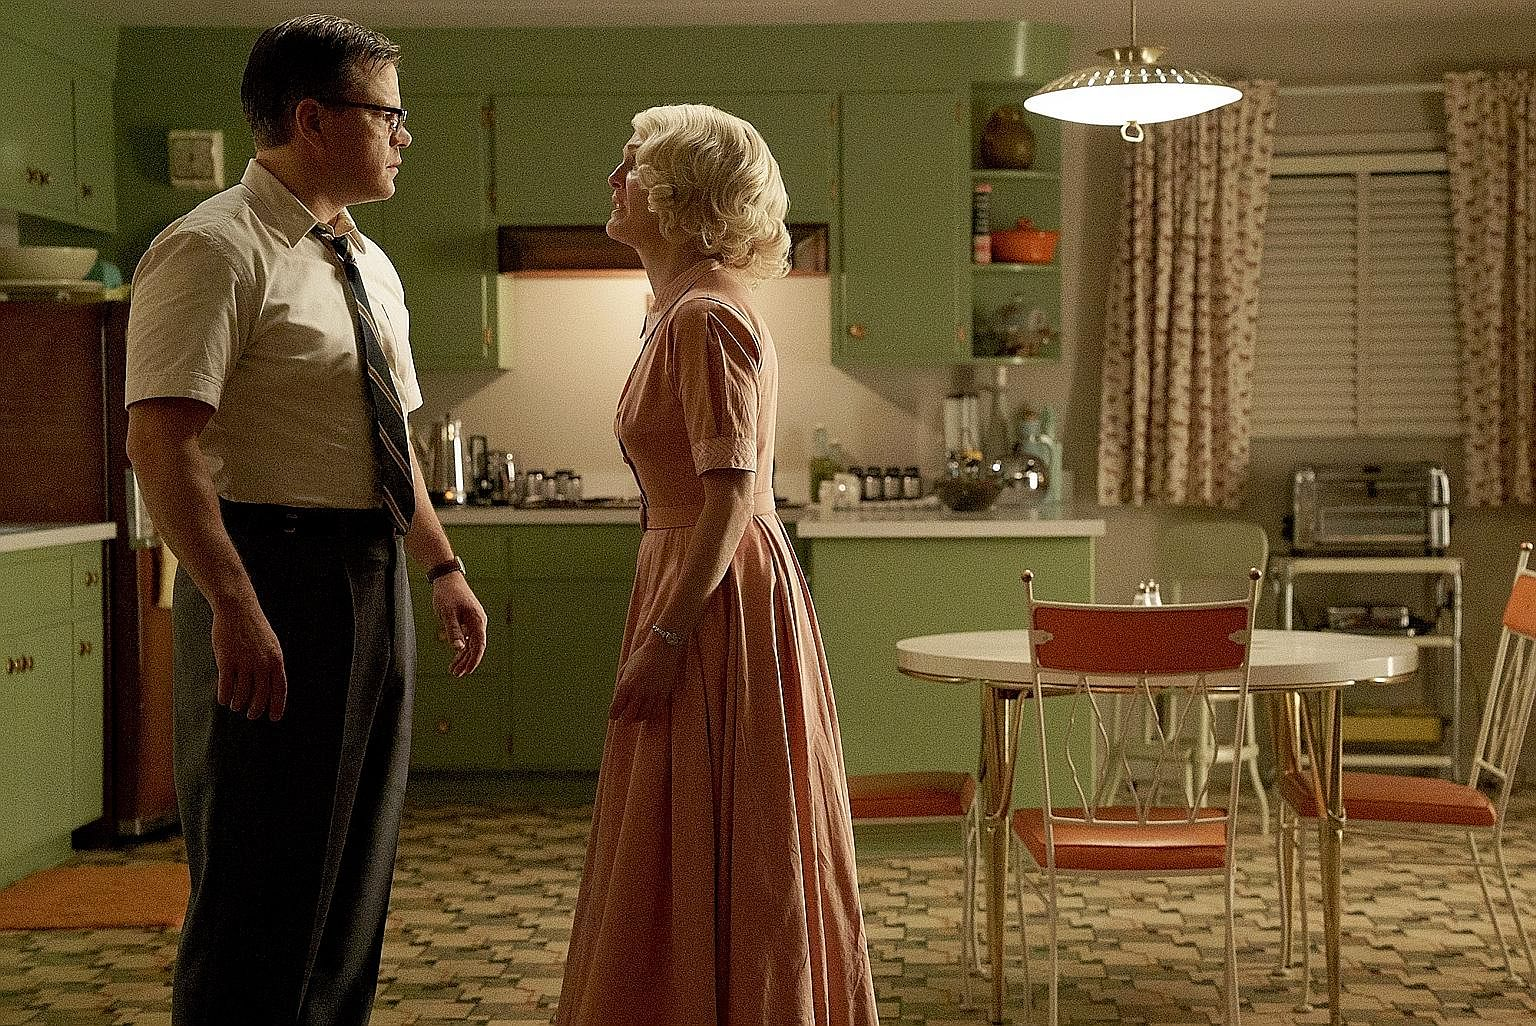 (Clockwise from top) Suburbicon feels recycled; Victoria & Abdul gets tired quickly and A Ghost Story is mersmerising and haunting.